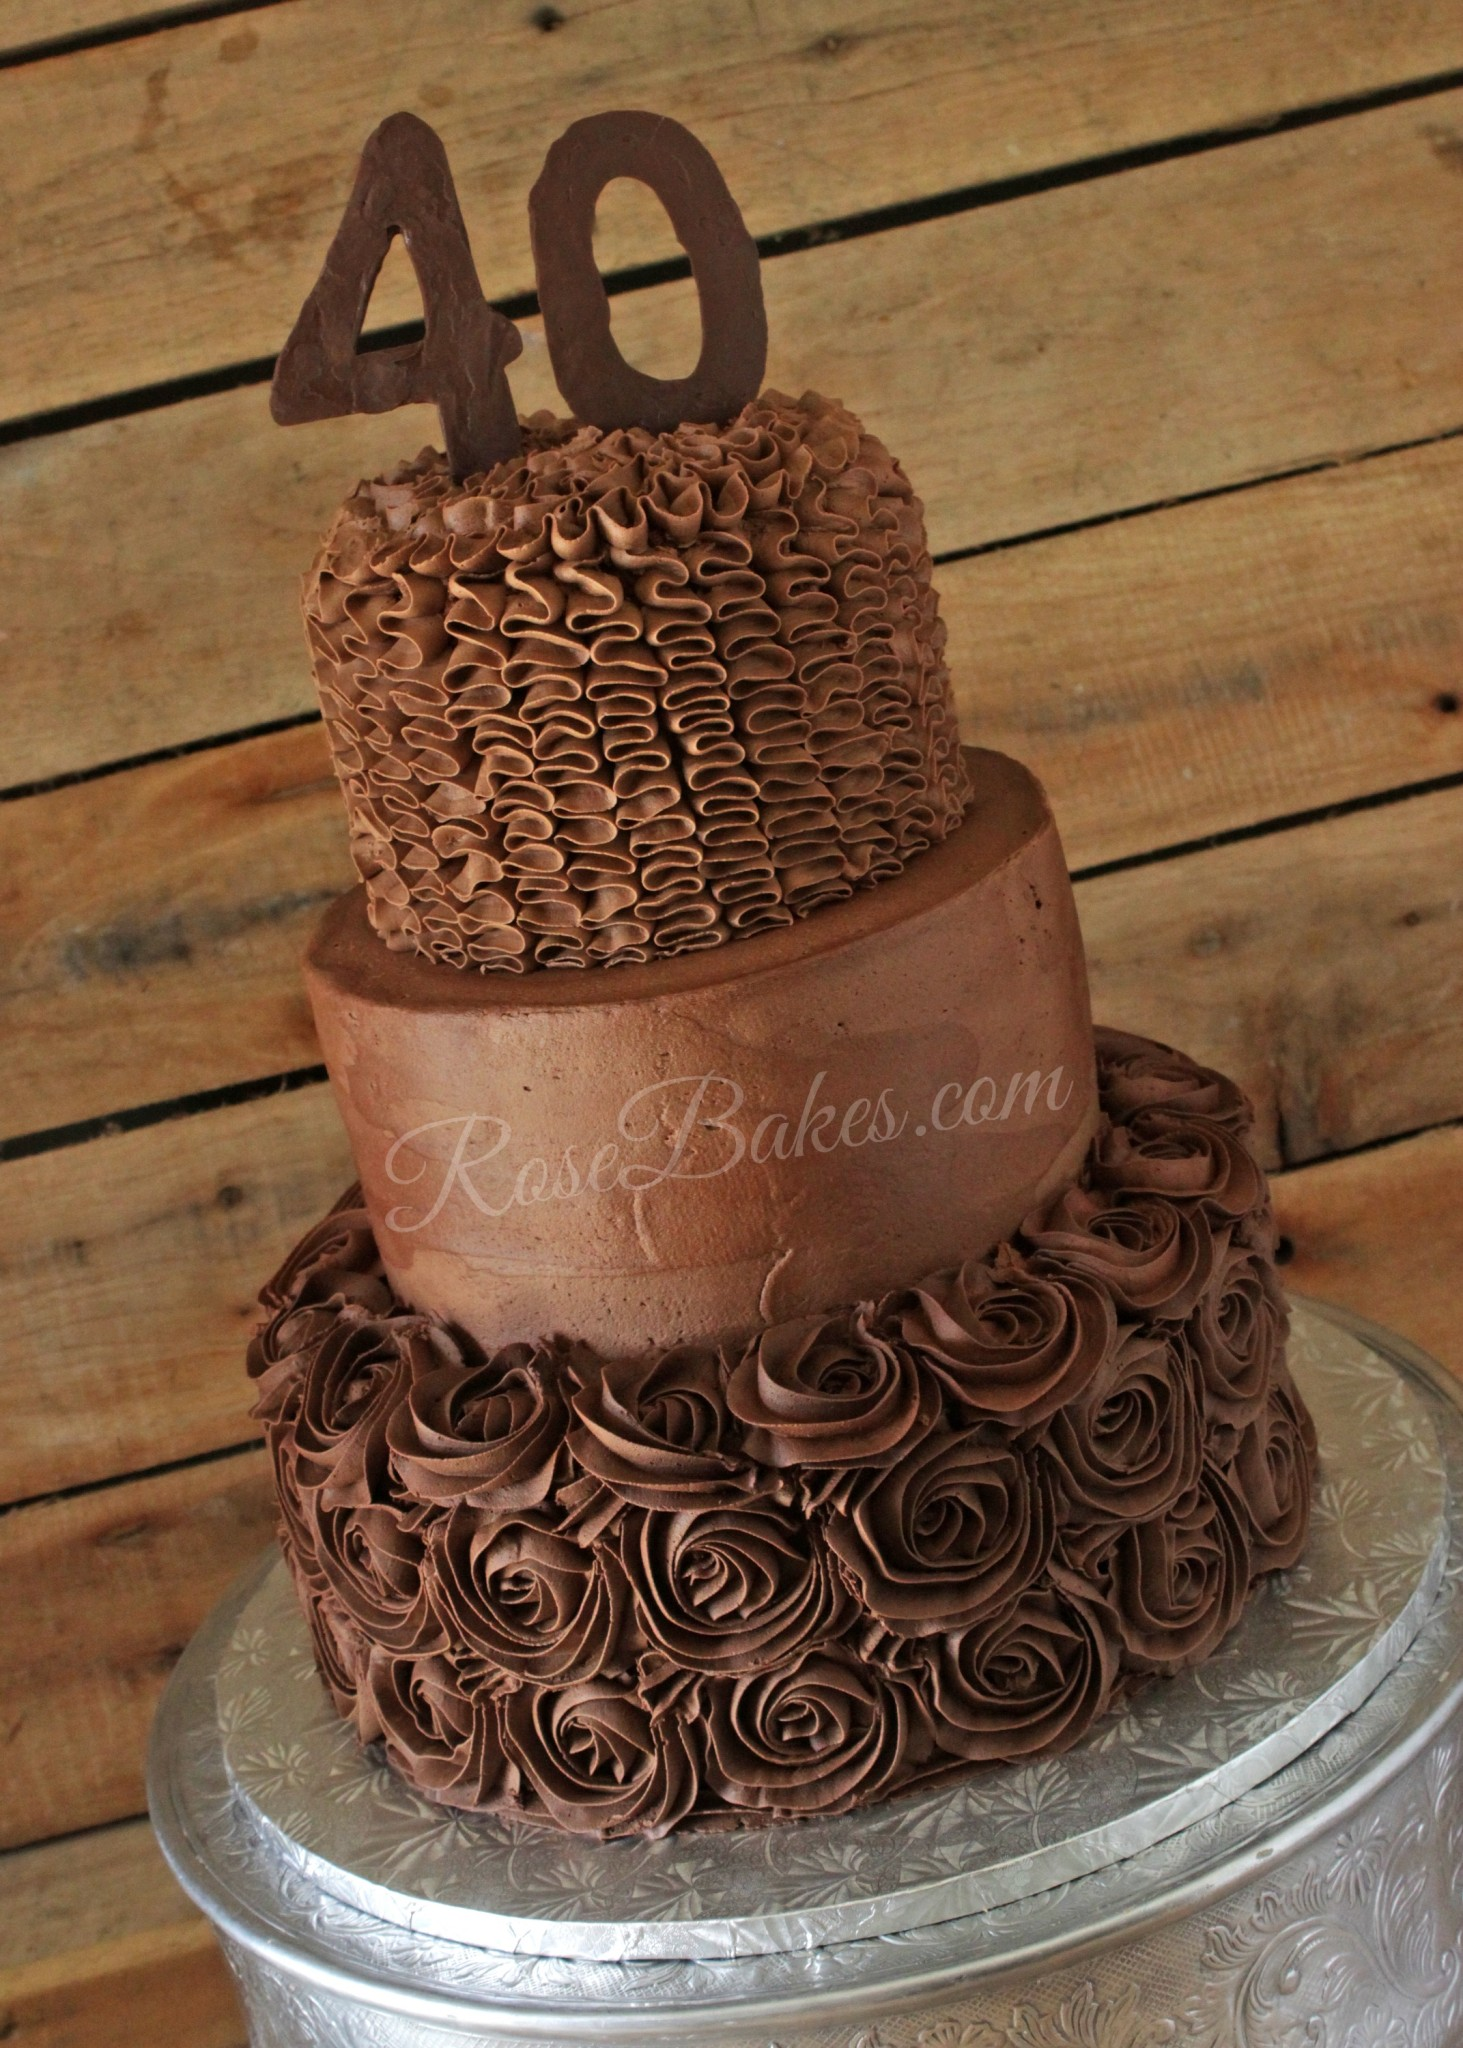 All chocolate 40th birthday cake rose bakes for 40th birthday cake decoration